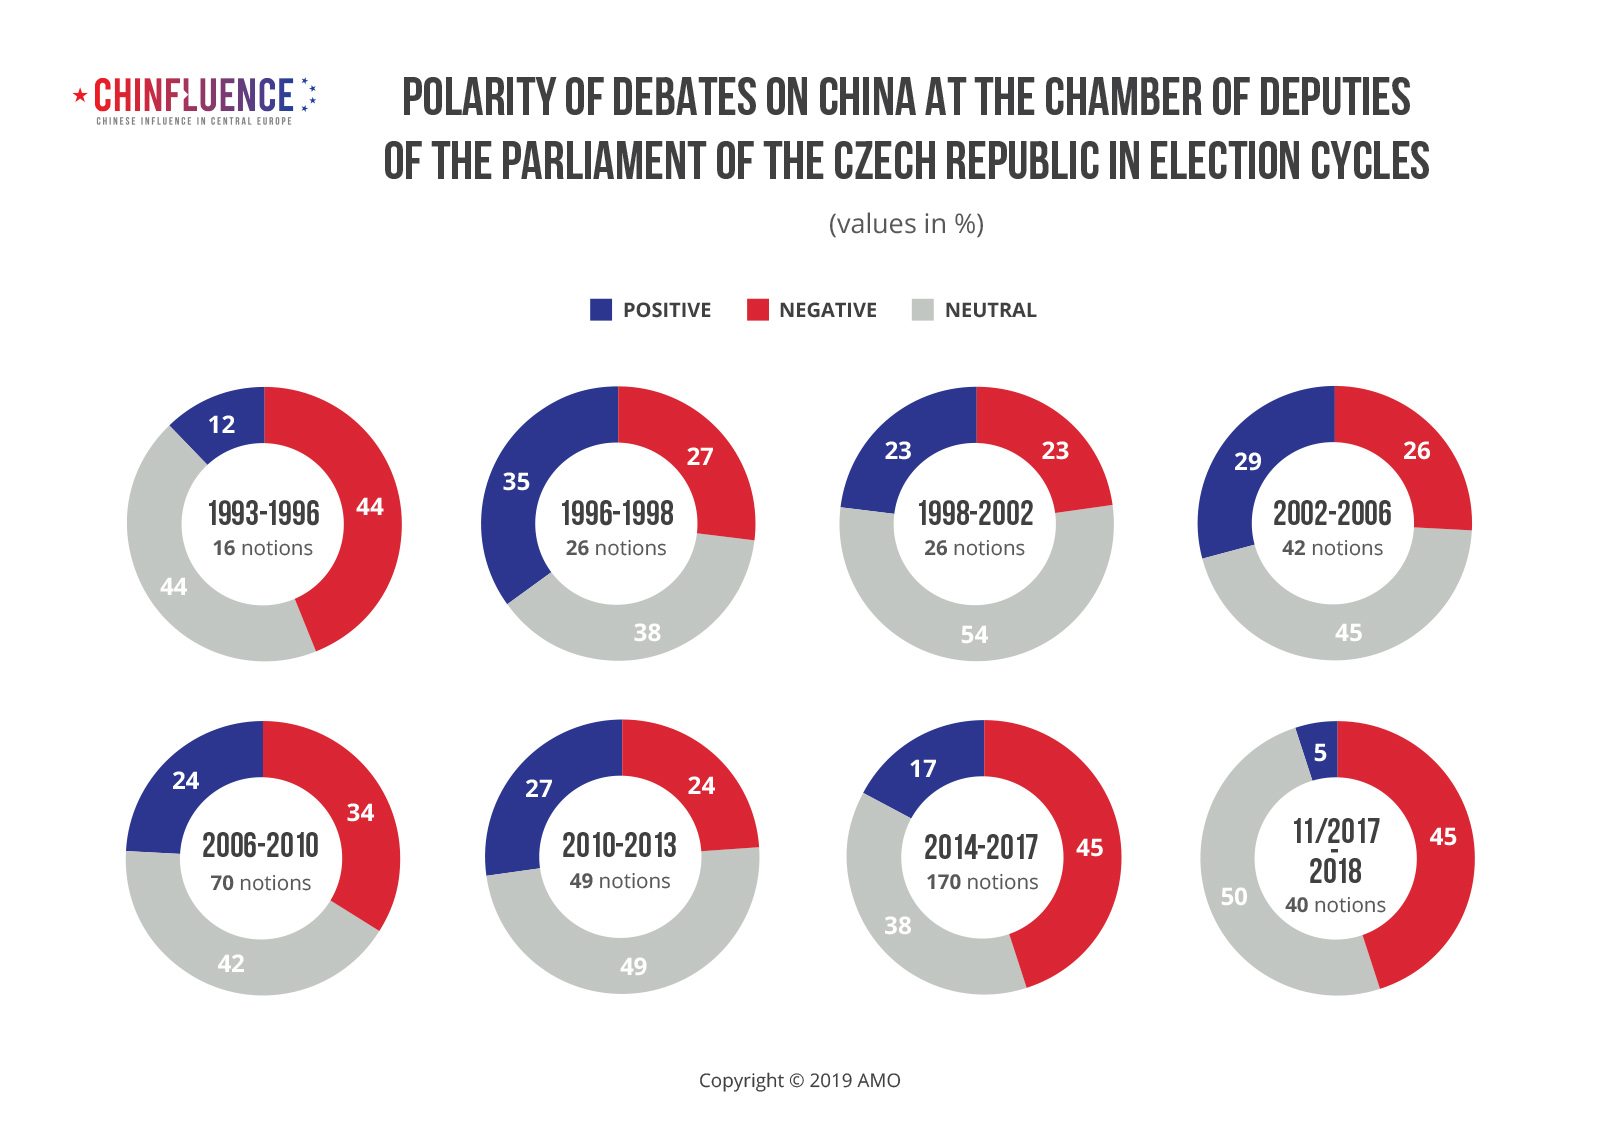 Polarity-of-debates-on-China-at-the-Chamber-of-Deputies-of-the-Parliament-of-the-Czech-Republic-in-election-cycles